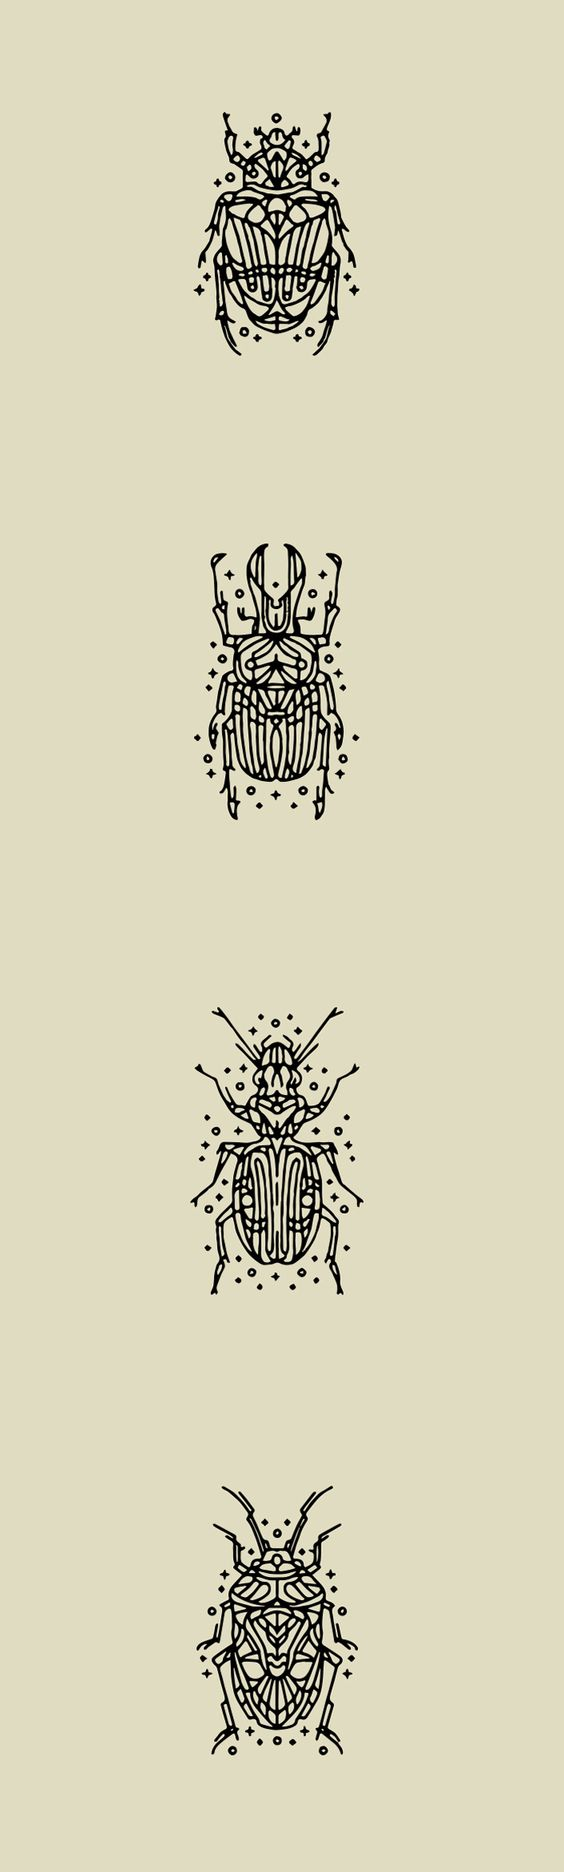 Beetle Tattoo's (small compilation) on Behance